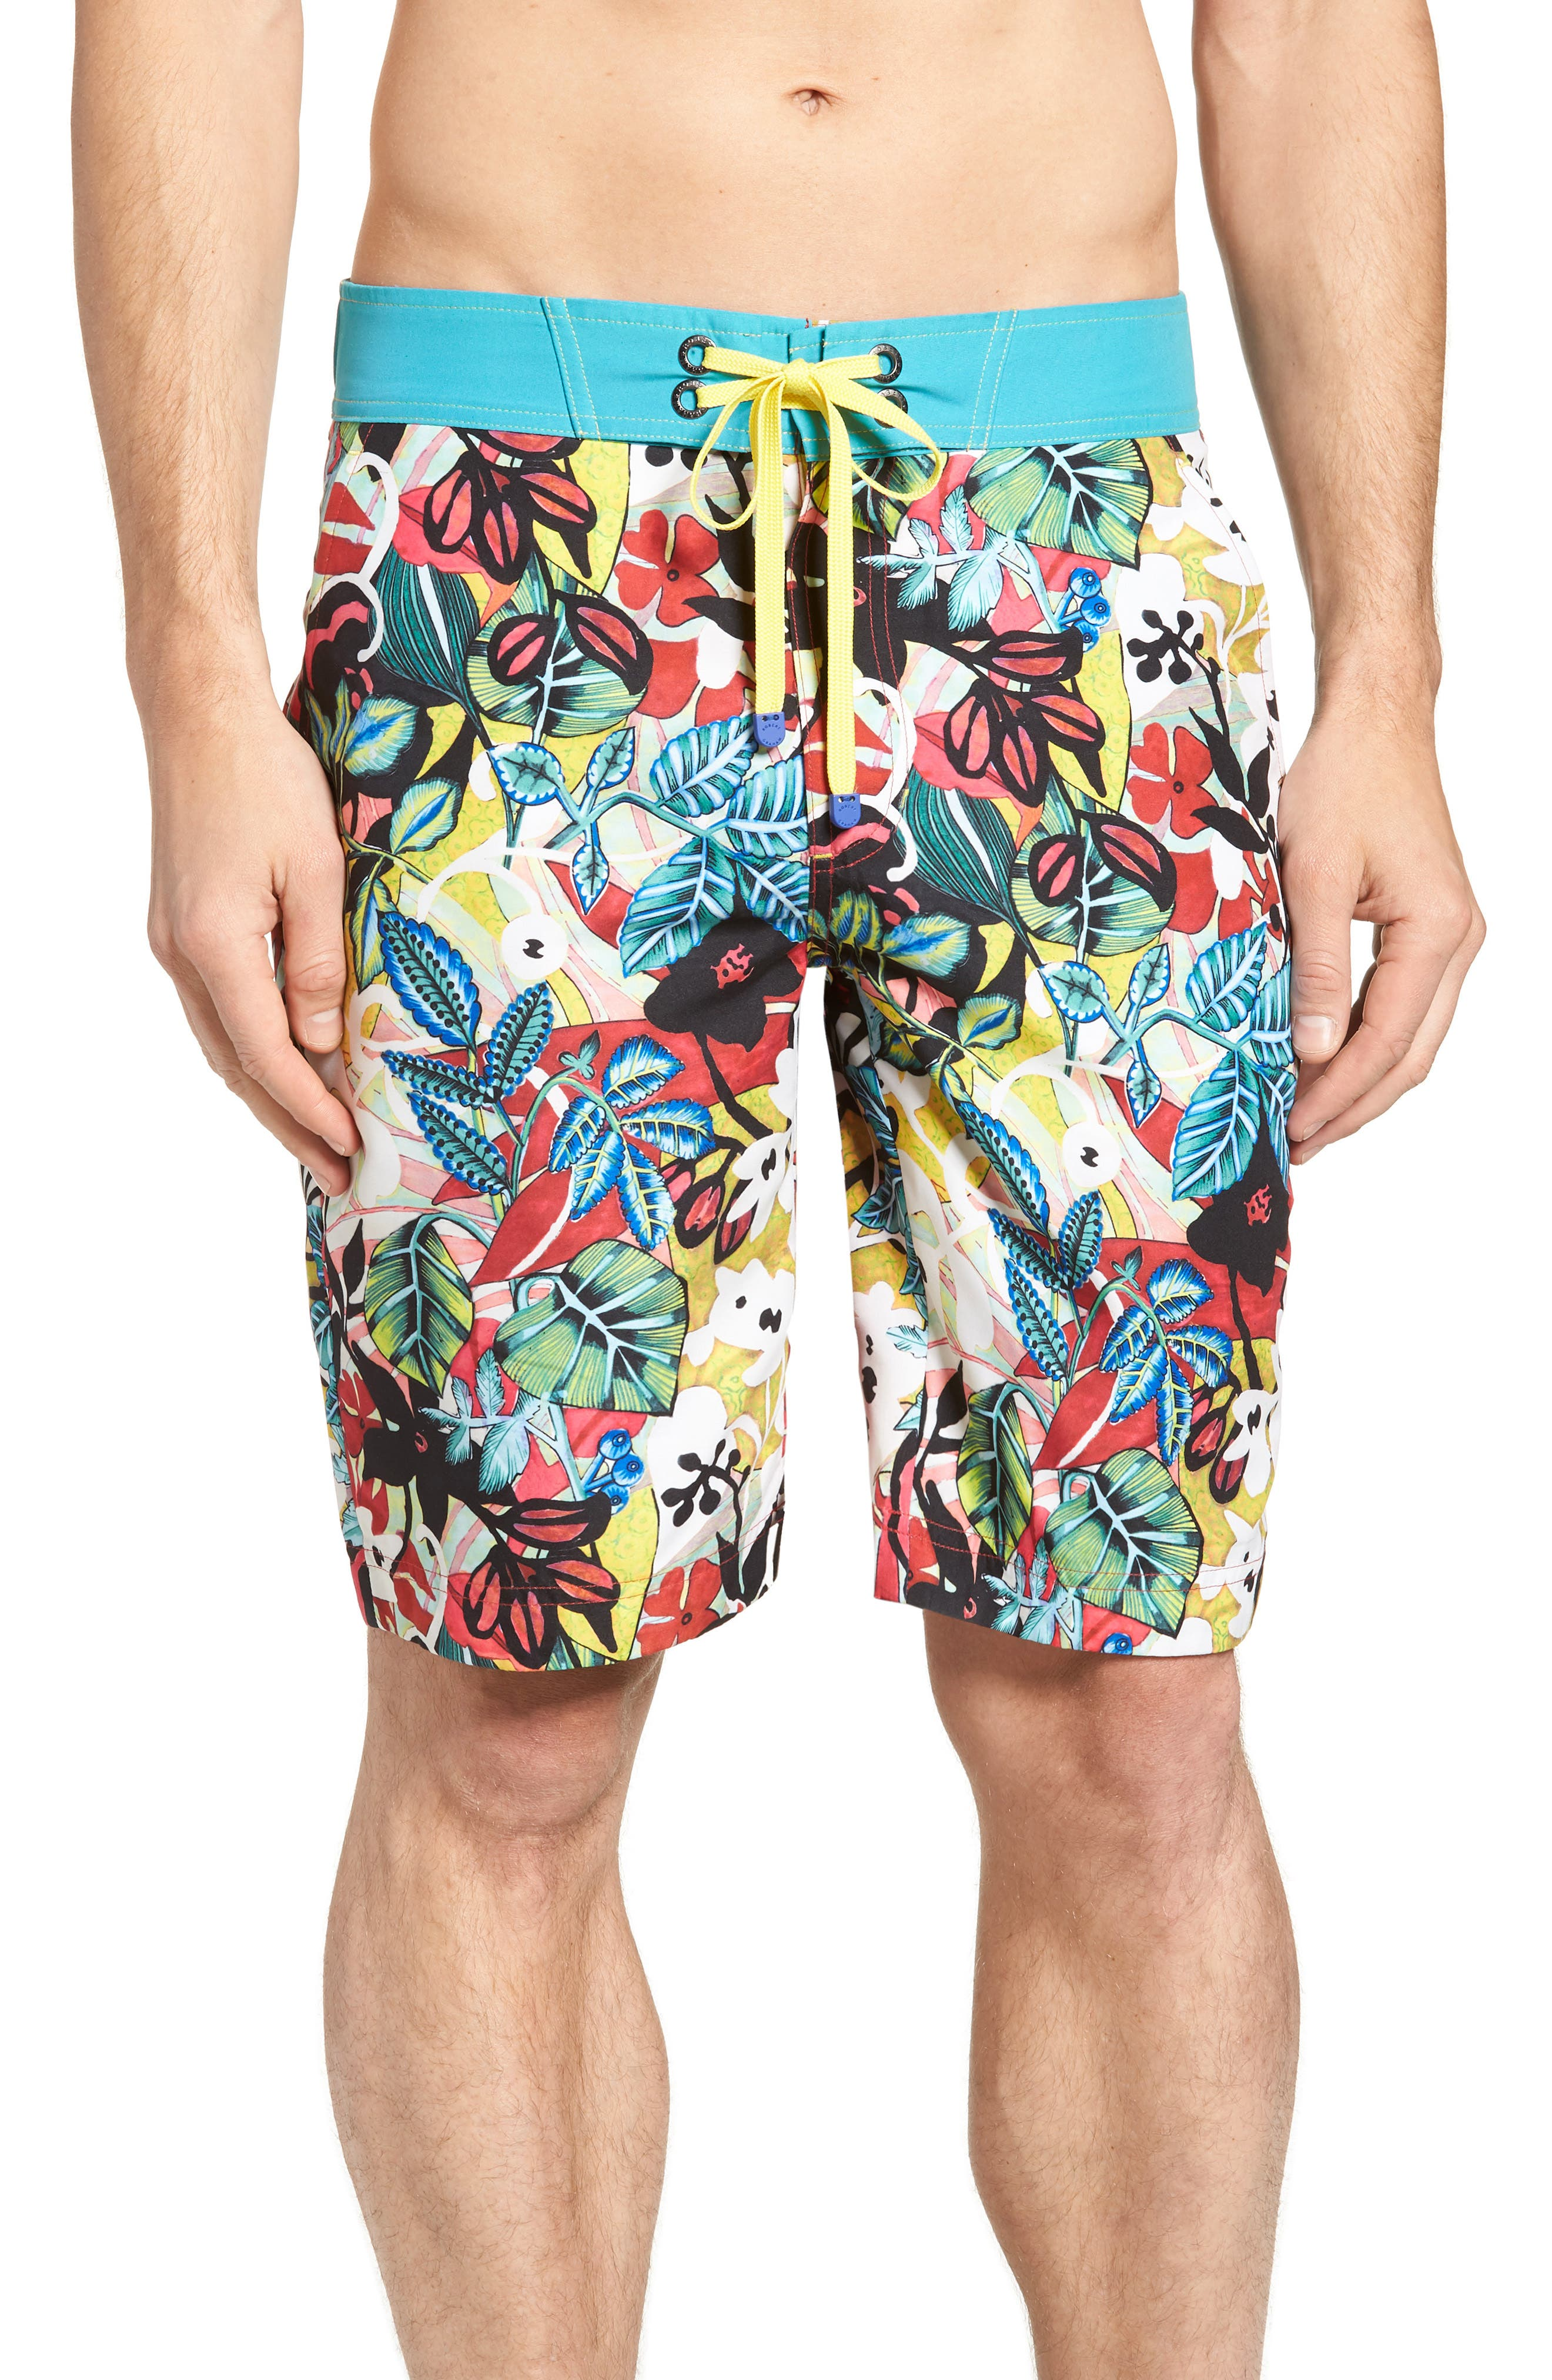 Barbarito Classic Fit Board Shorts,                             Main thumbnail 1, color,                             MULTI